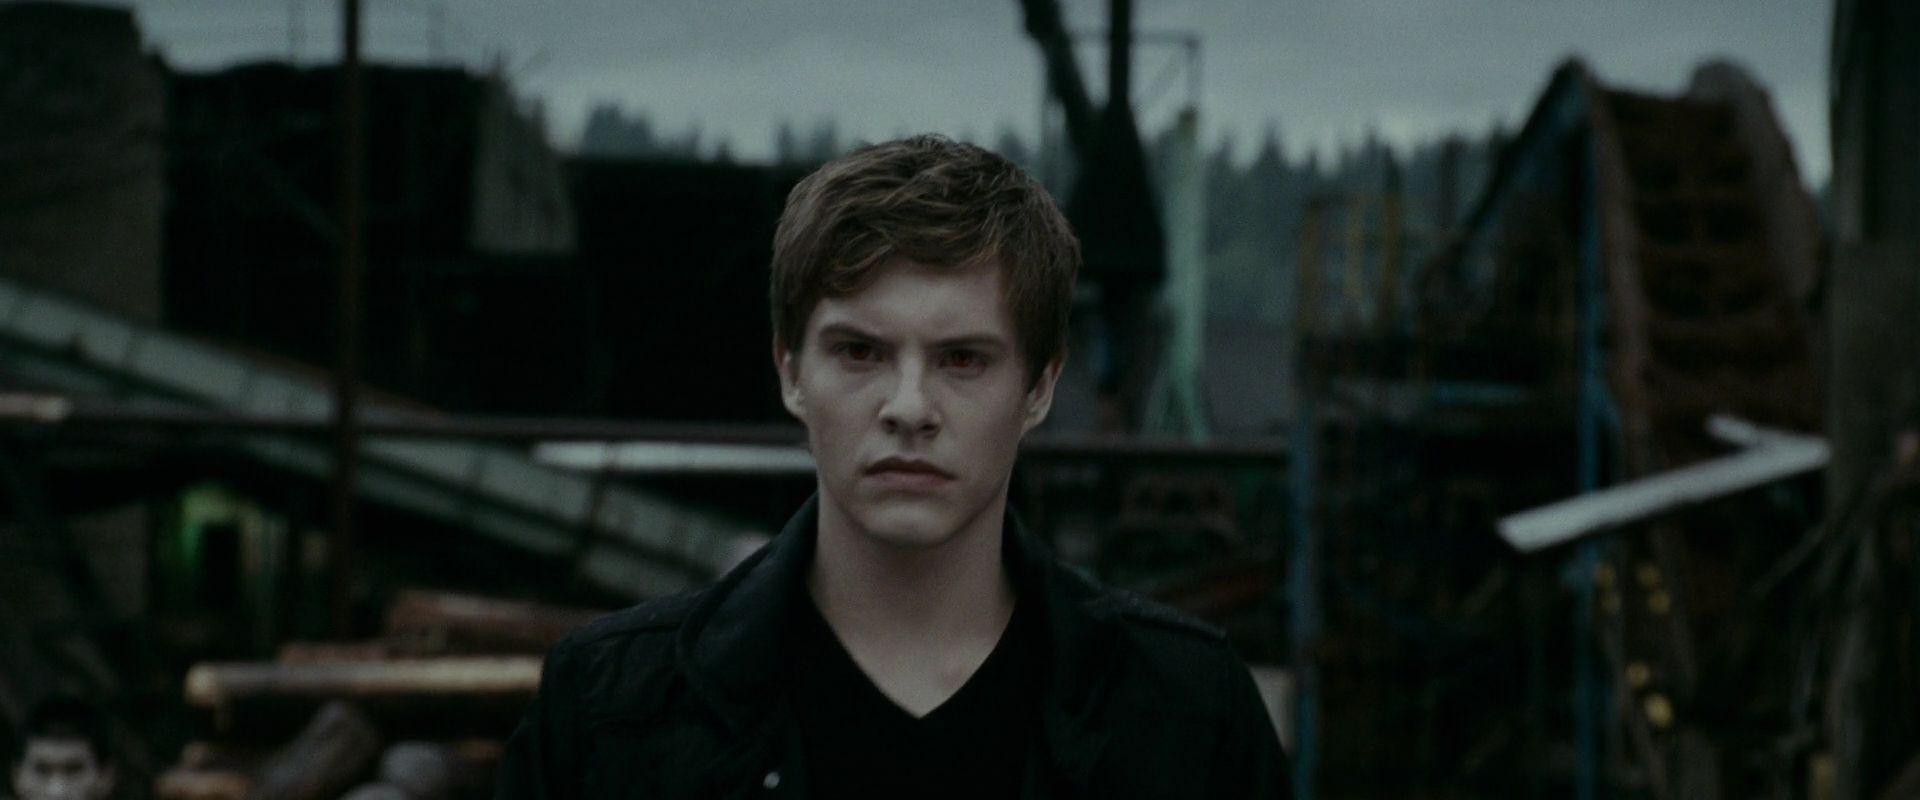 Xavier Samuel Eclipse Movie Bluray  HQ Xavier Samuel Eclipse